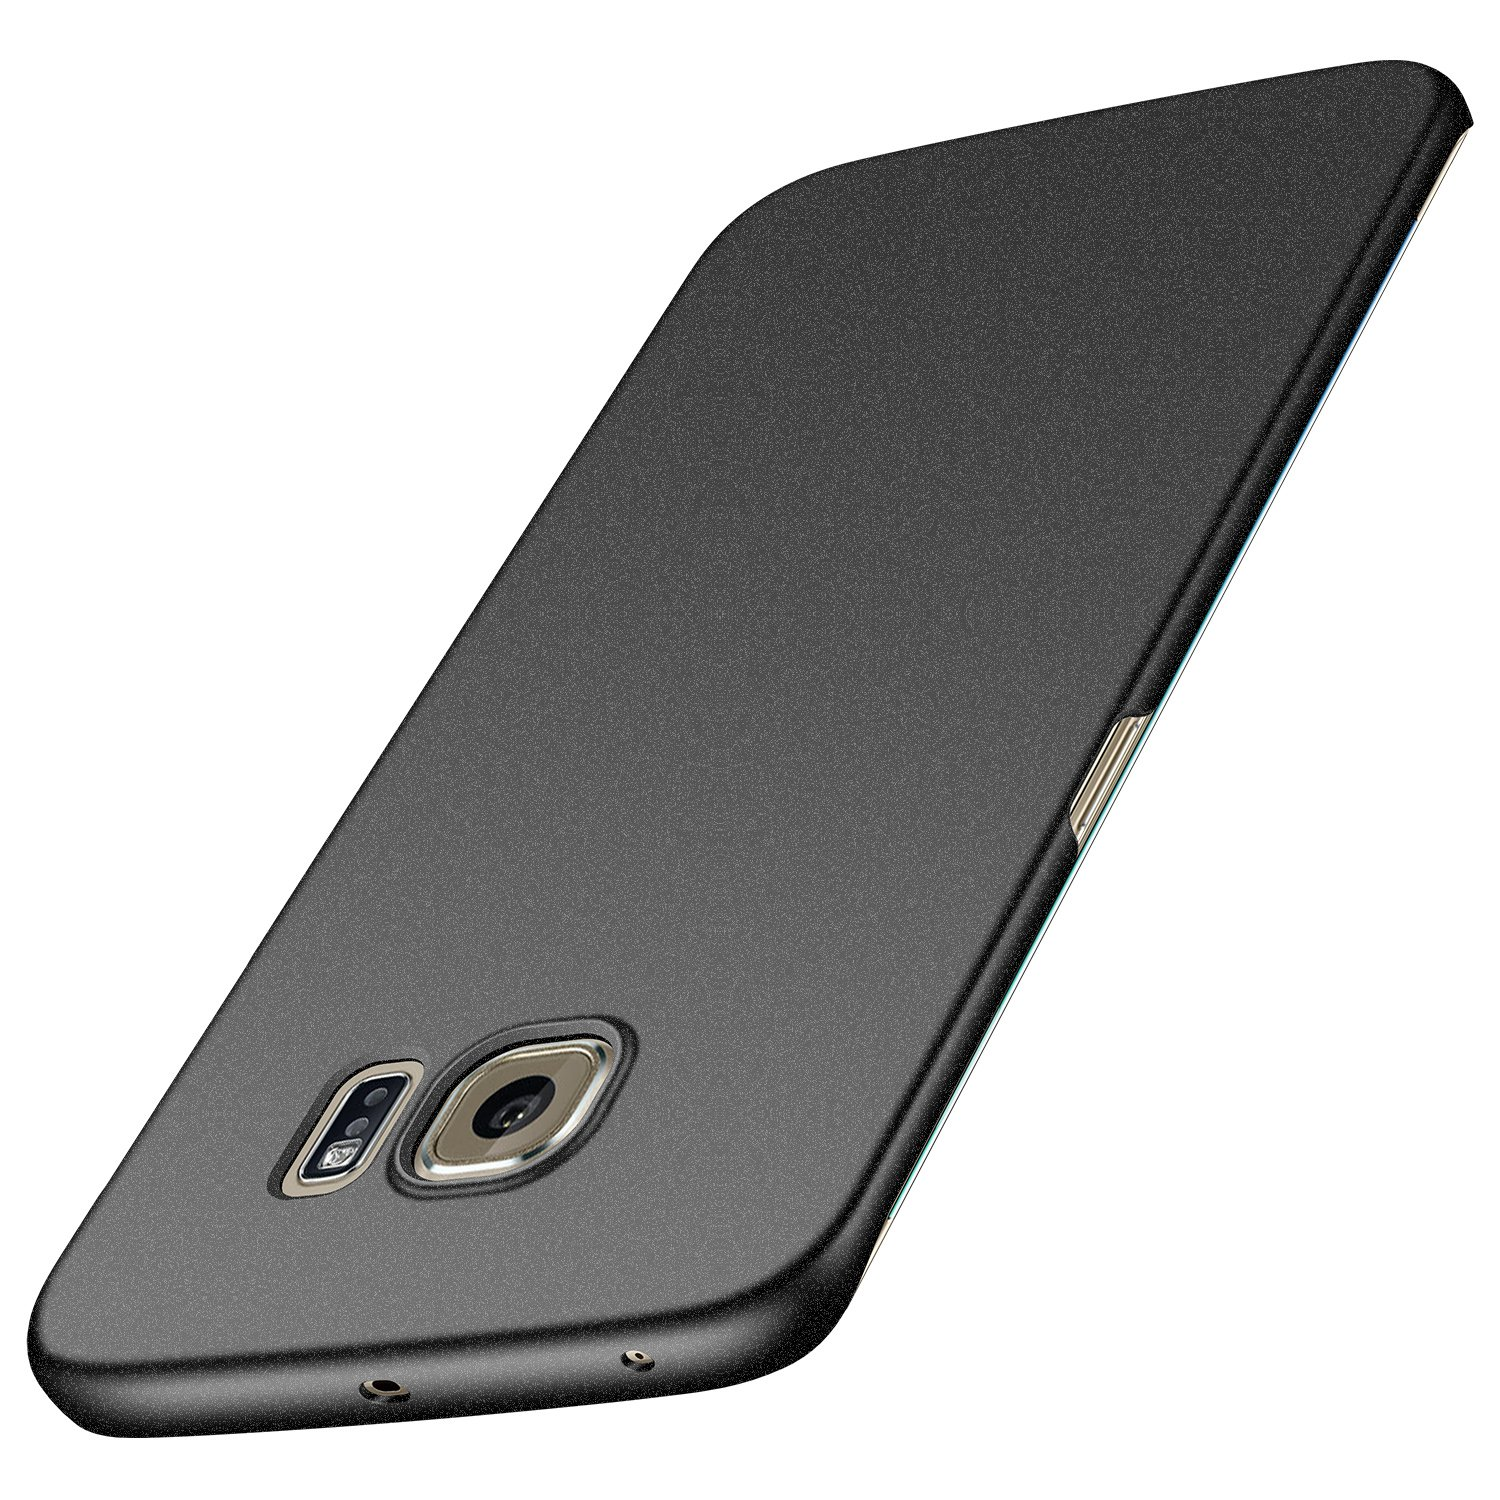 official photos c241d 0a818 anccer Compatible for Samsung Galaxy S6 Edge Plus Case [Ultra-Thin]  [Anti-Stain] [Anti-Drop] Premium Material Slim Full Protection Cover (Matte  Gray)